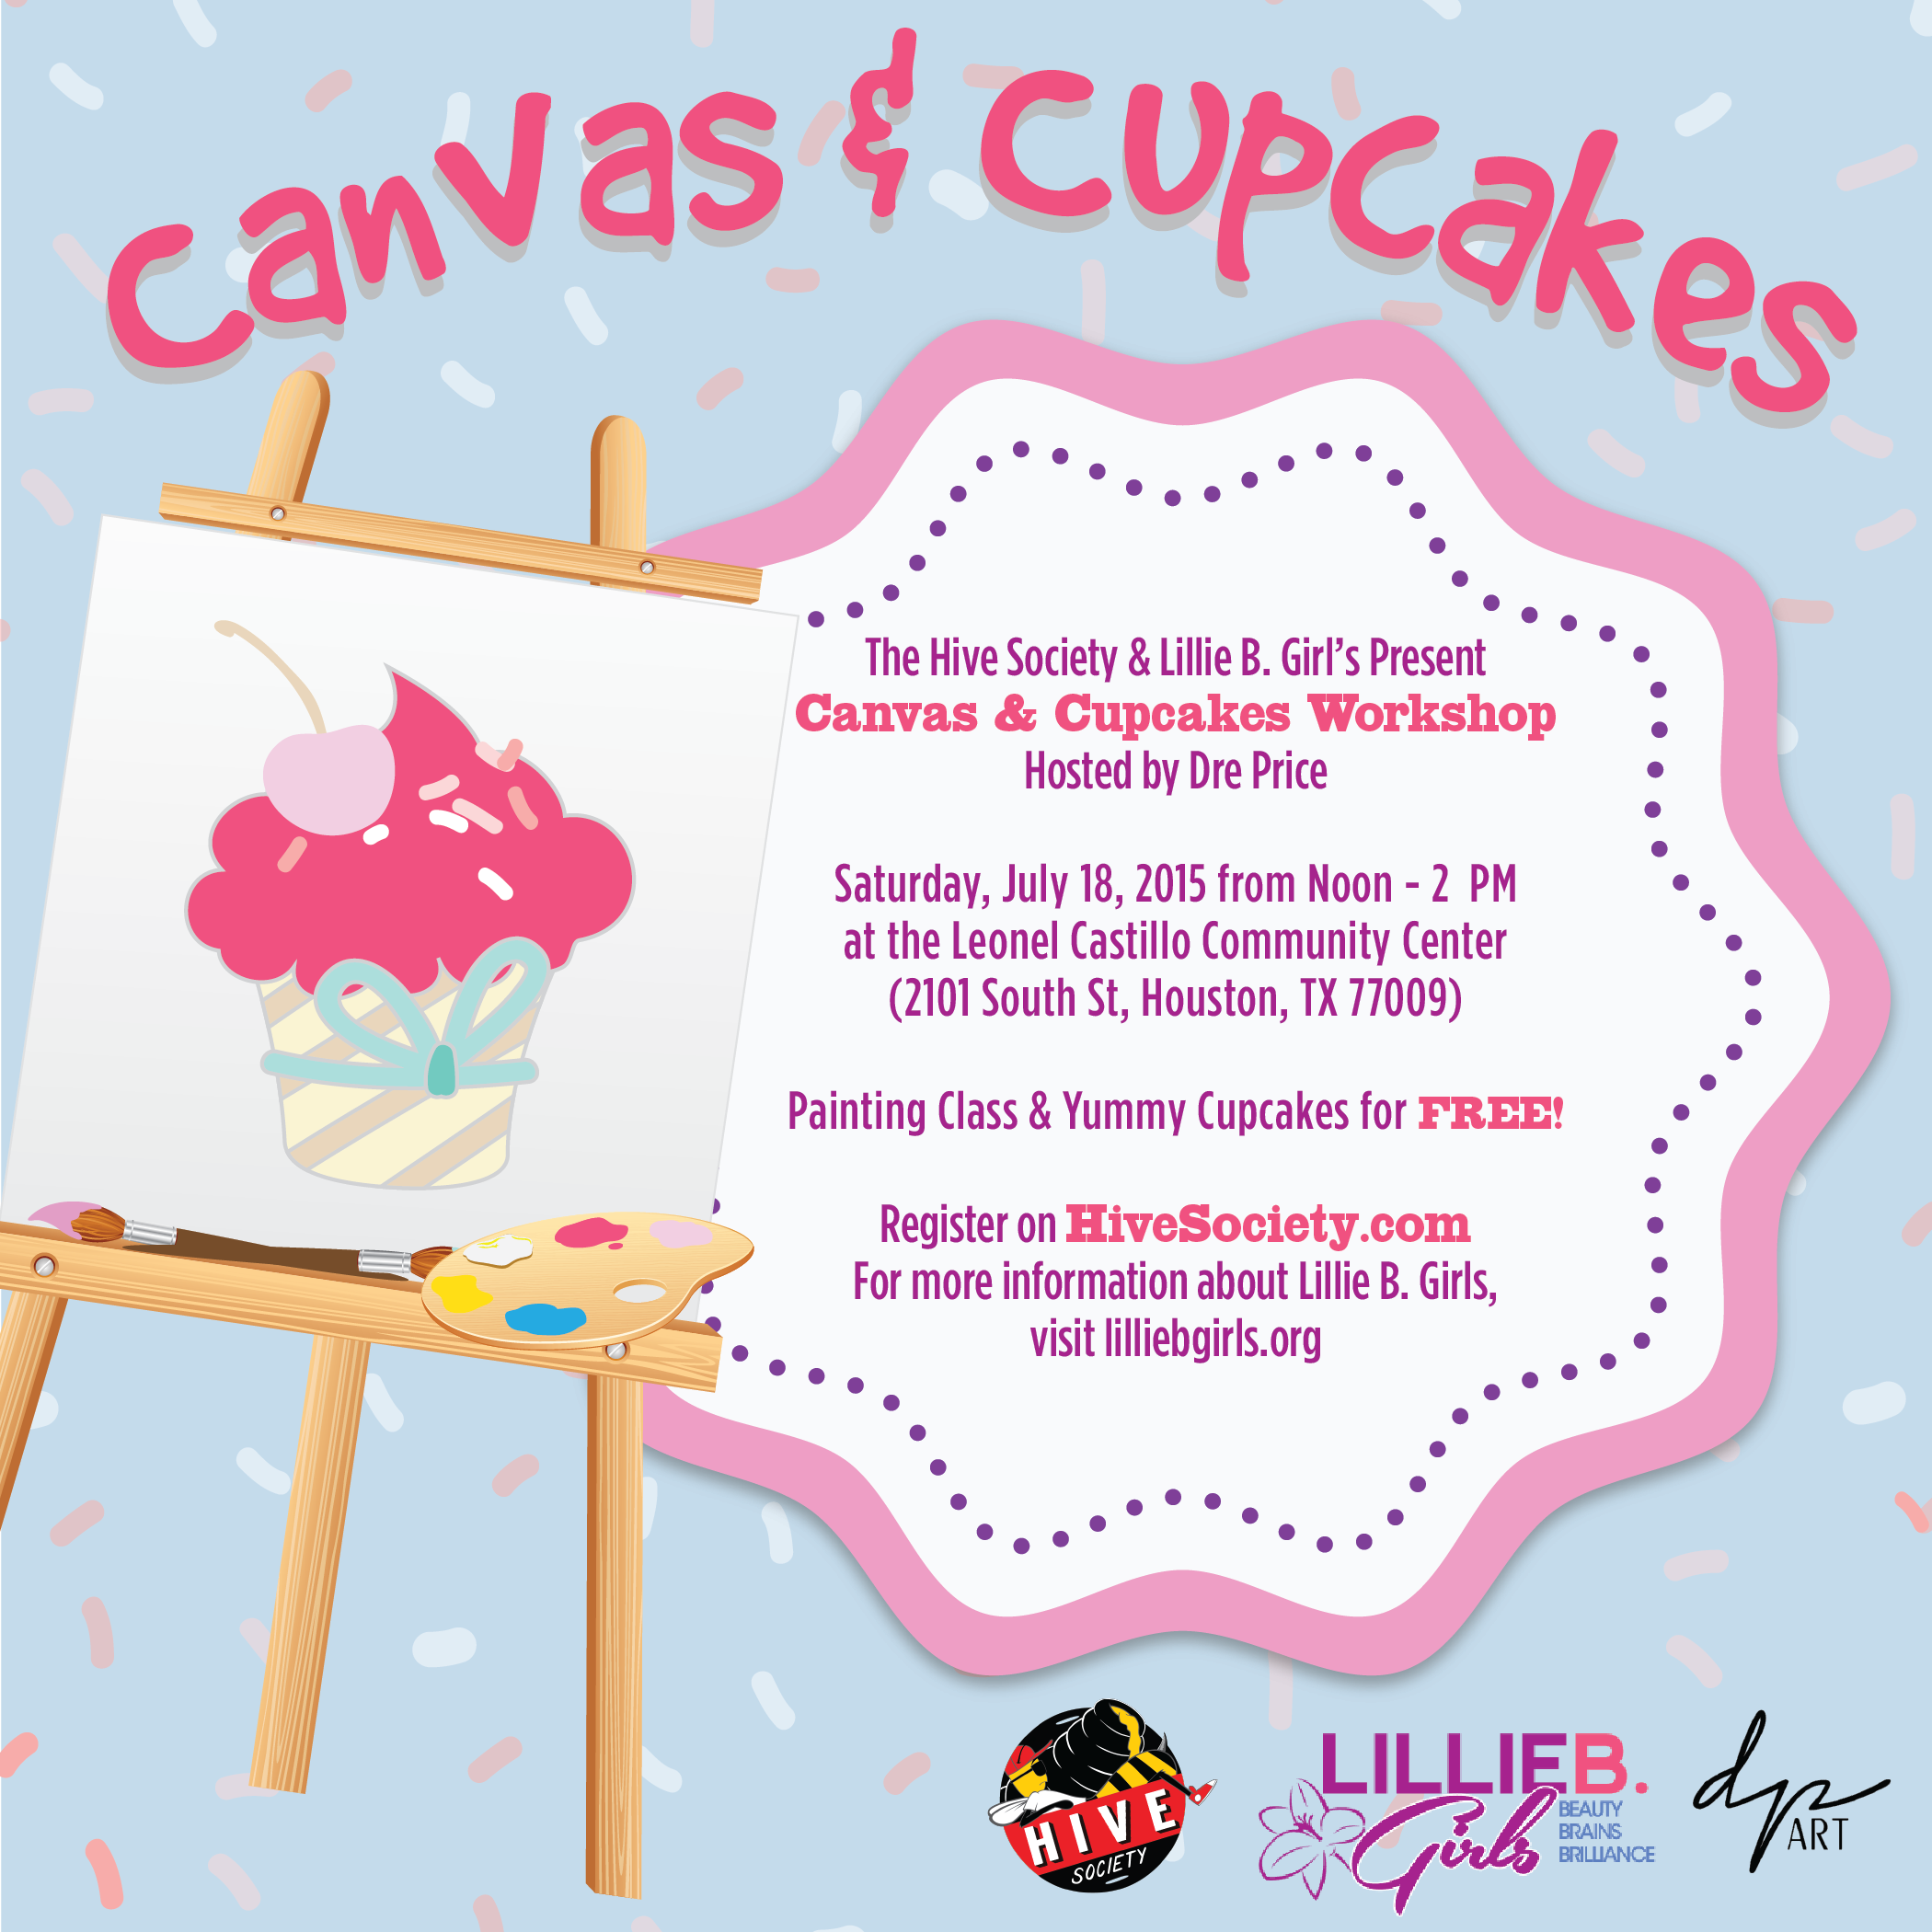 canvas and cupcakes with hive society and lillie b girls